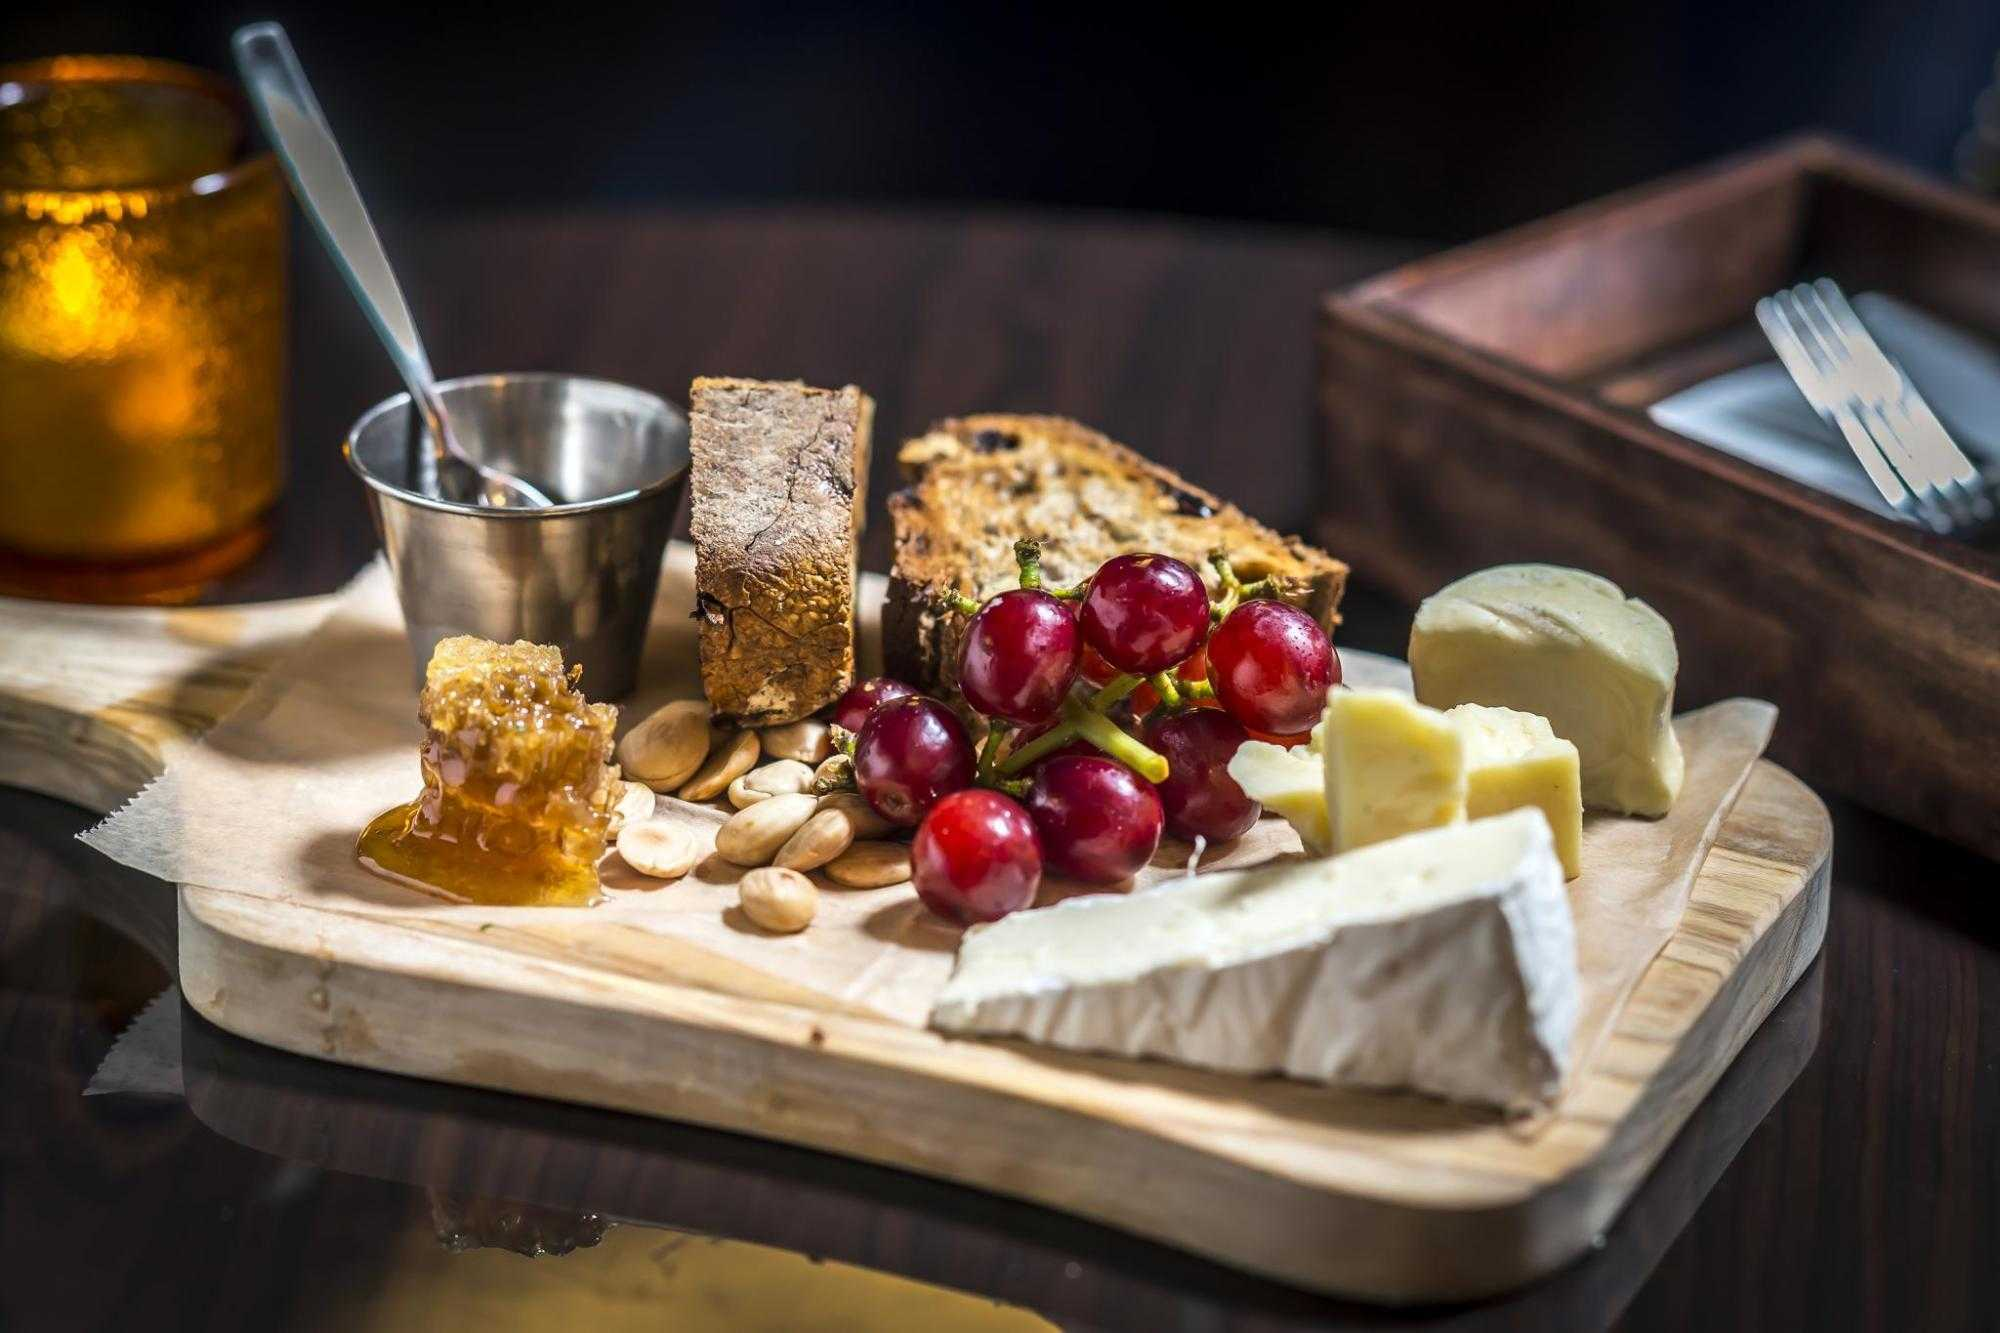 Plate of cheese, bread and grapes